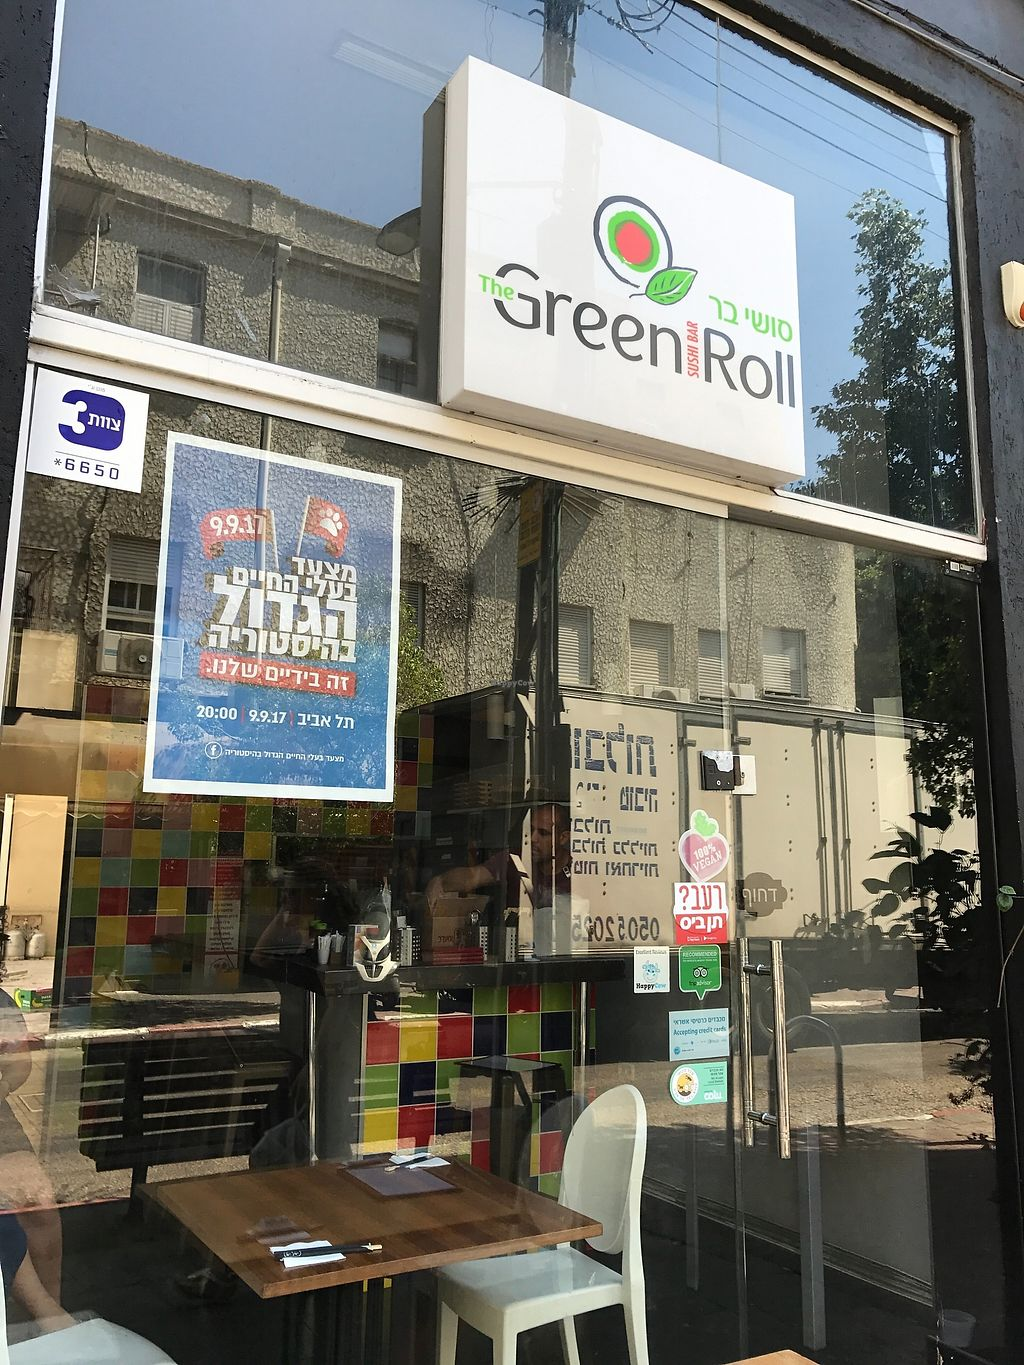 """Photo of The Green Roll  by <a href=""""/members/profile/Brok%20O.%20Lee"""">Brok O. Lee</a> <br/>Outside view  <br/> August 27, 2017  - <a href='/contact/abuse/image/53638/297805'>Report</a>"""